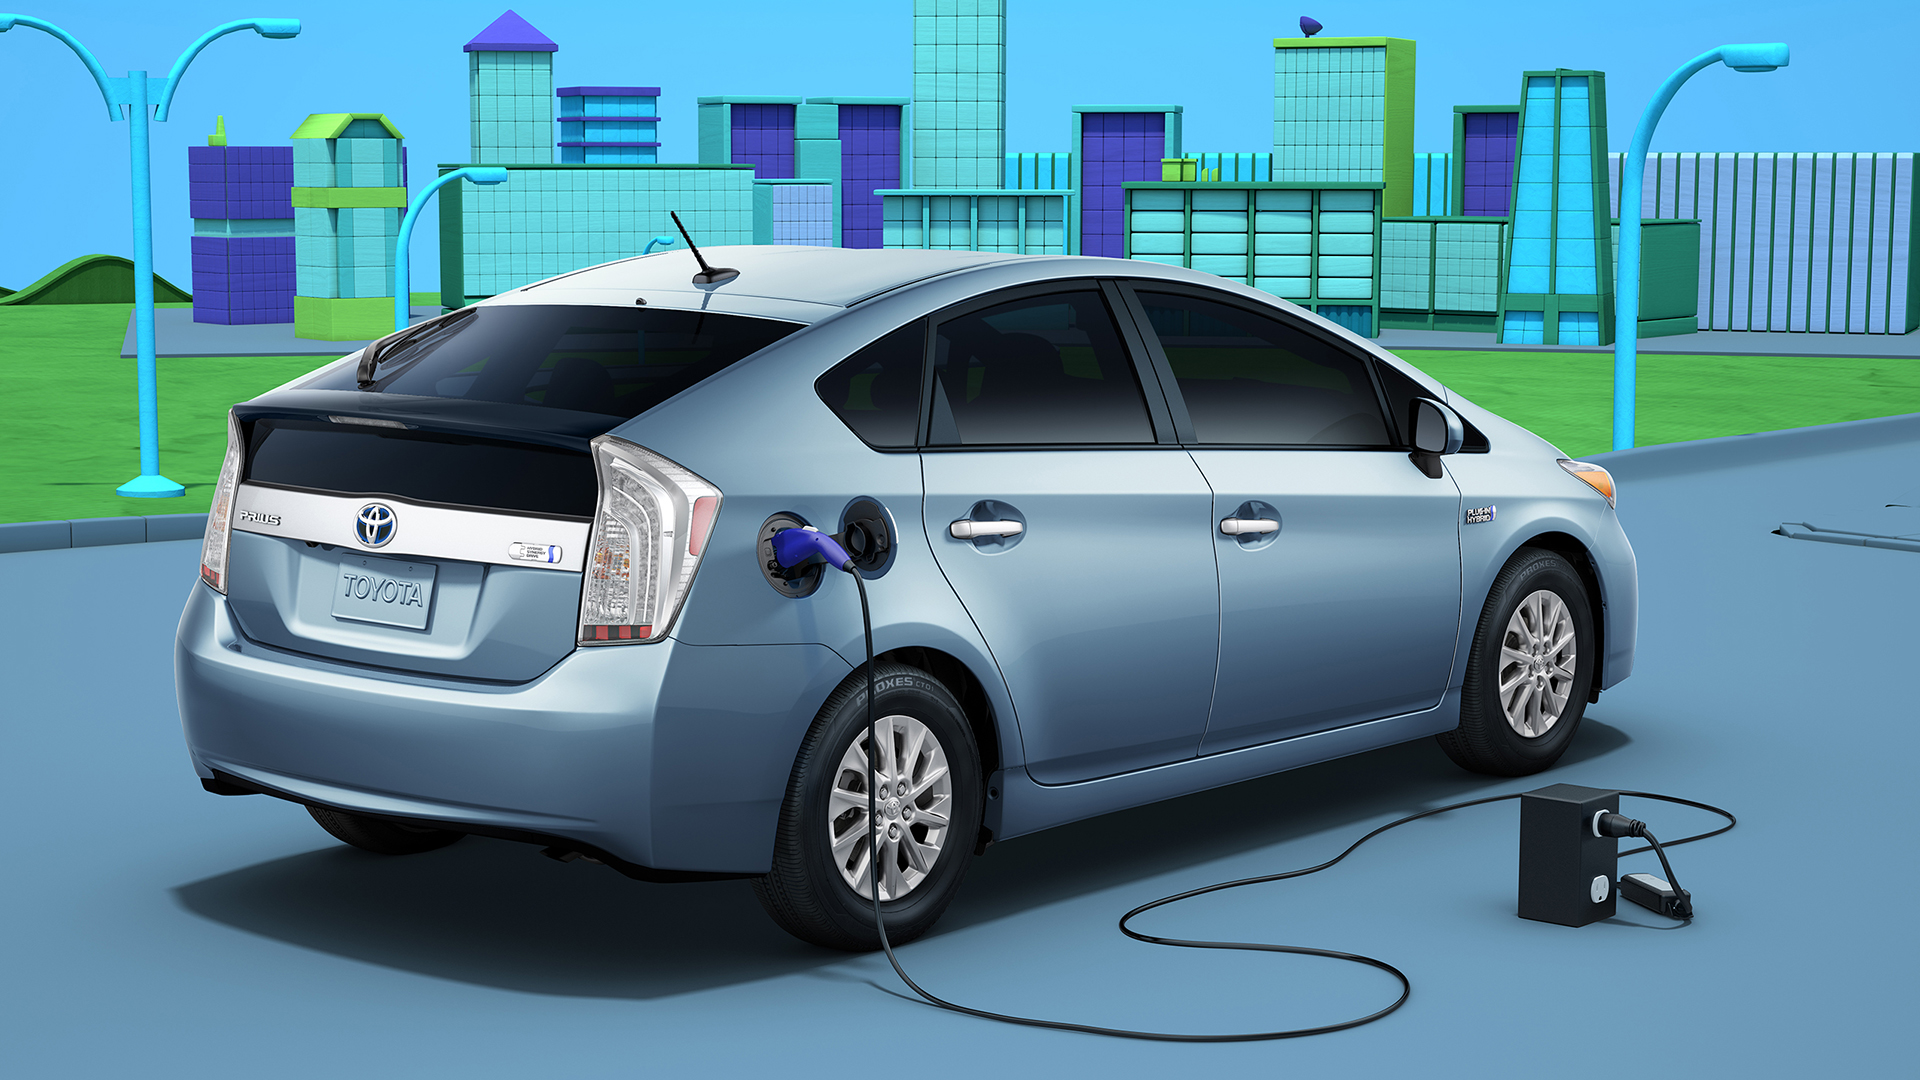 Used Toyota Prius >> Electric and hybrid cars: Why buying used may offer more value — for less money - TODAY.com